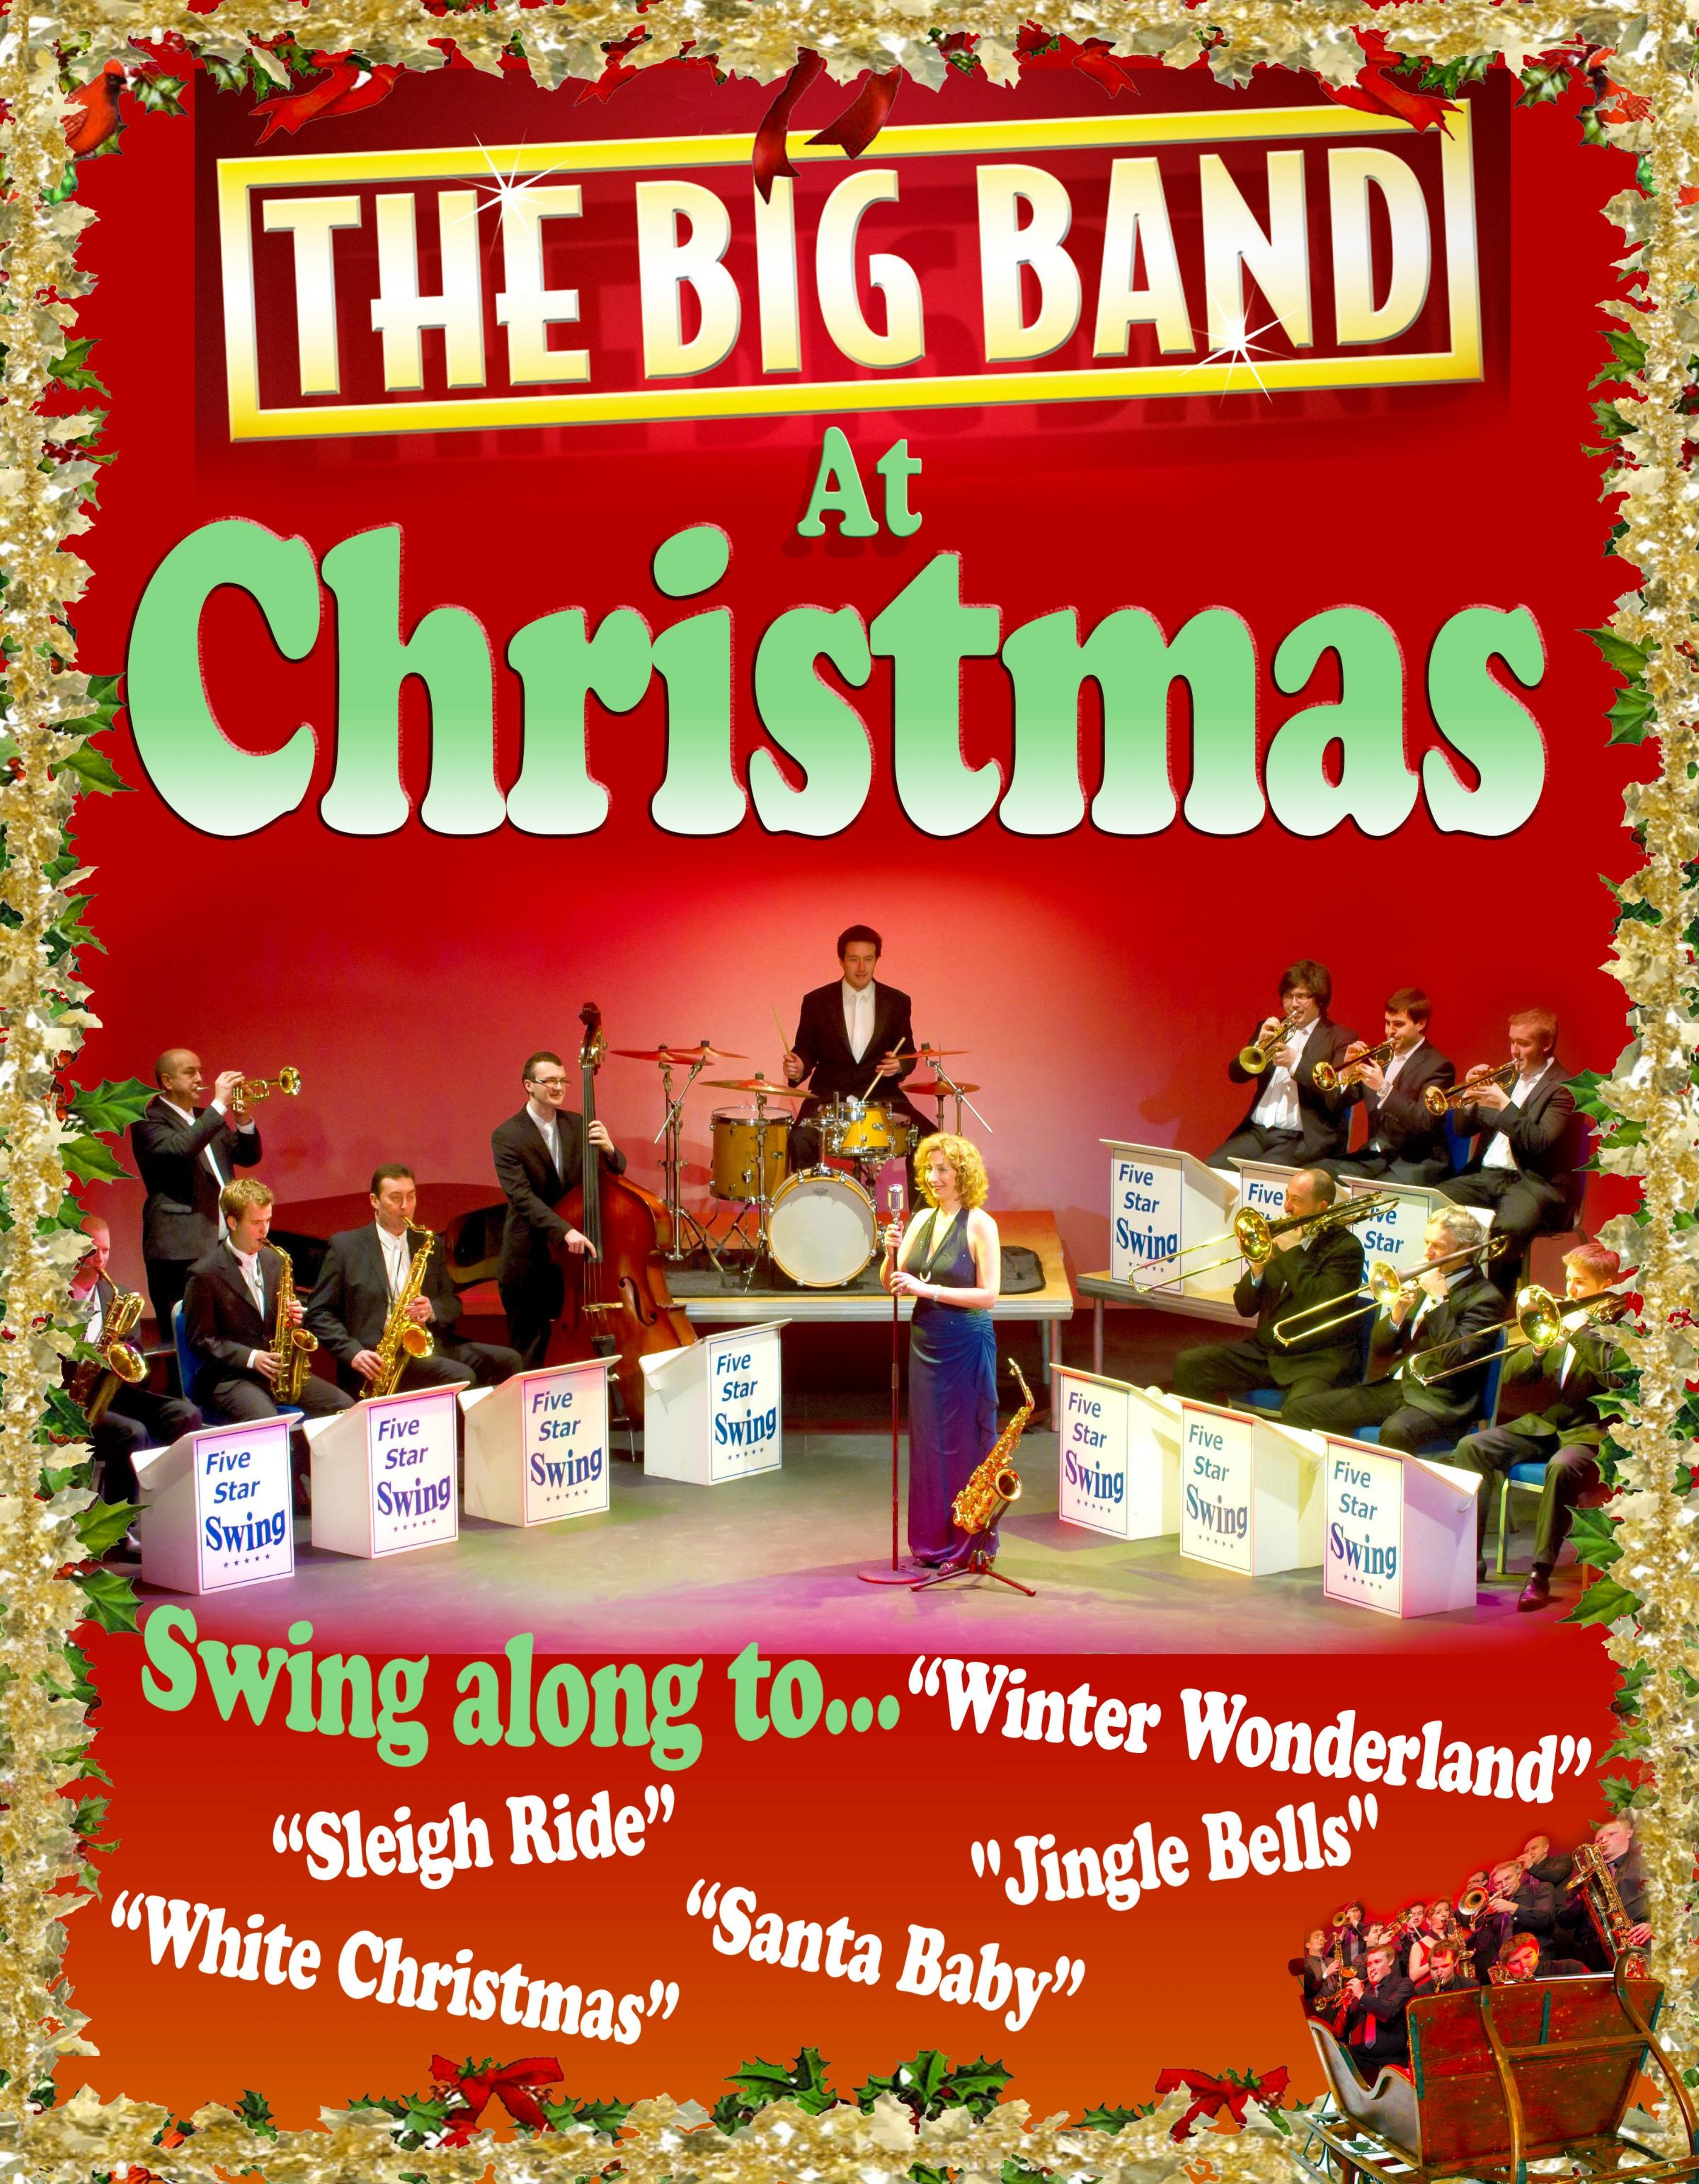 The Big Band at Christmas